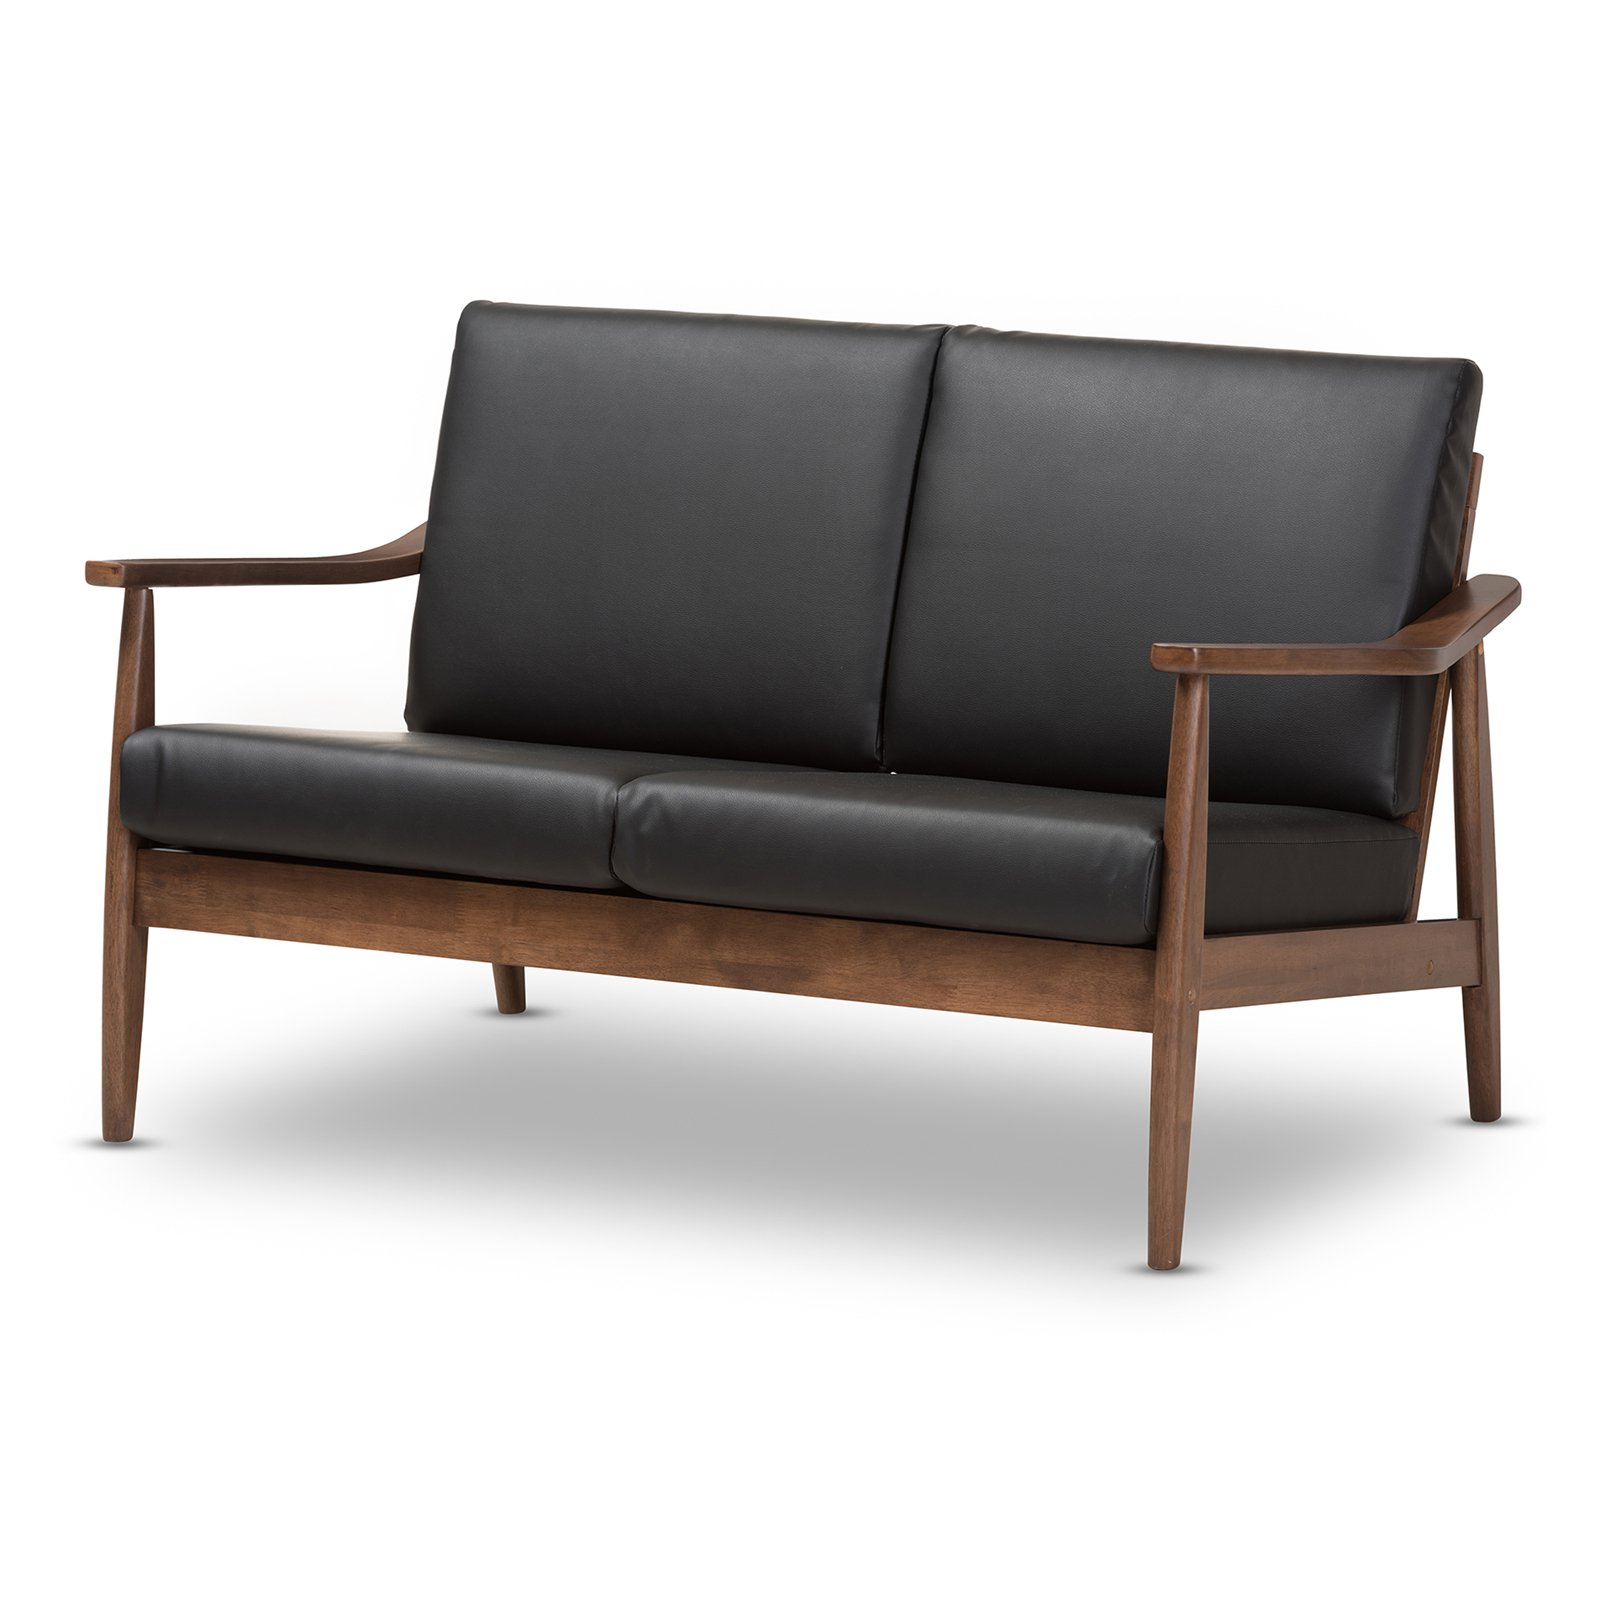 Baxton Studio Venza Mid-Century Modern Walnut Wood Black Faux Leather 2-Seater Loveseat